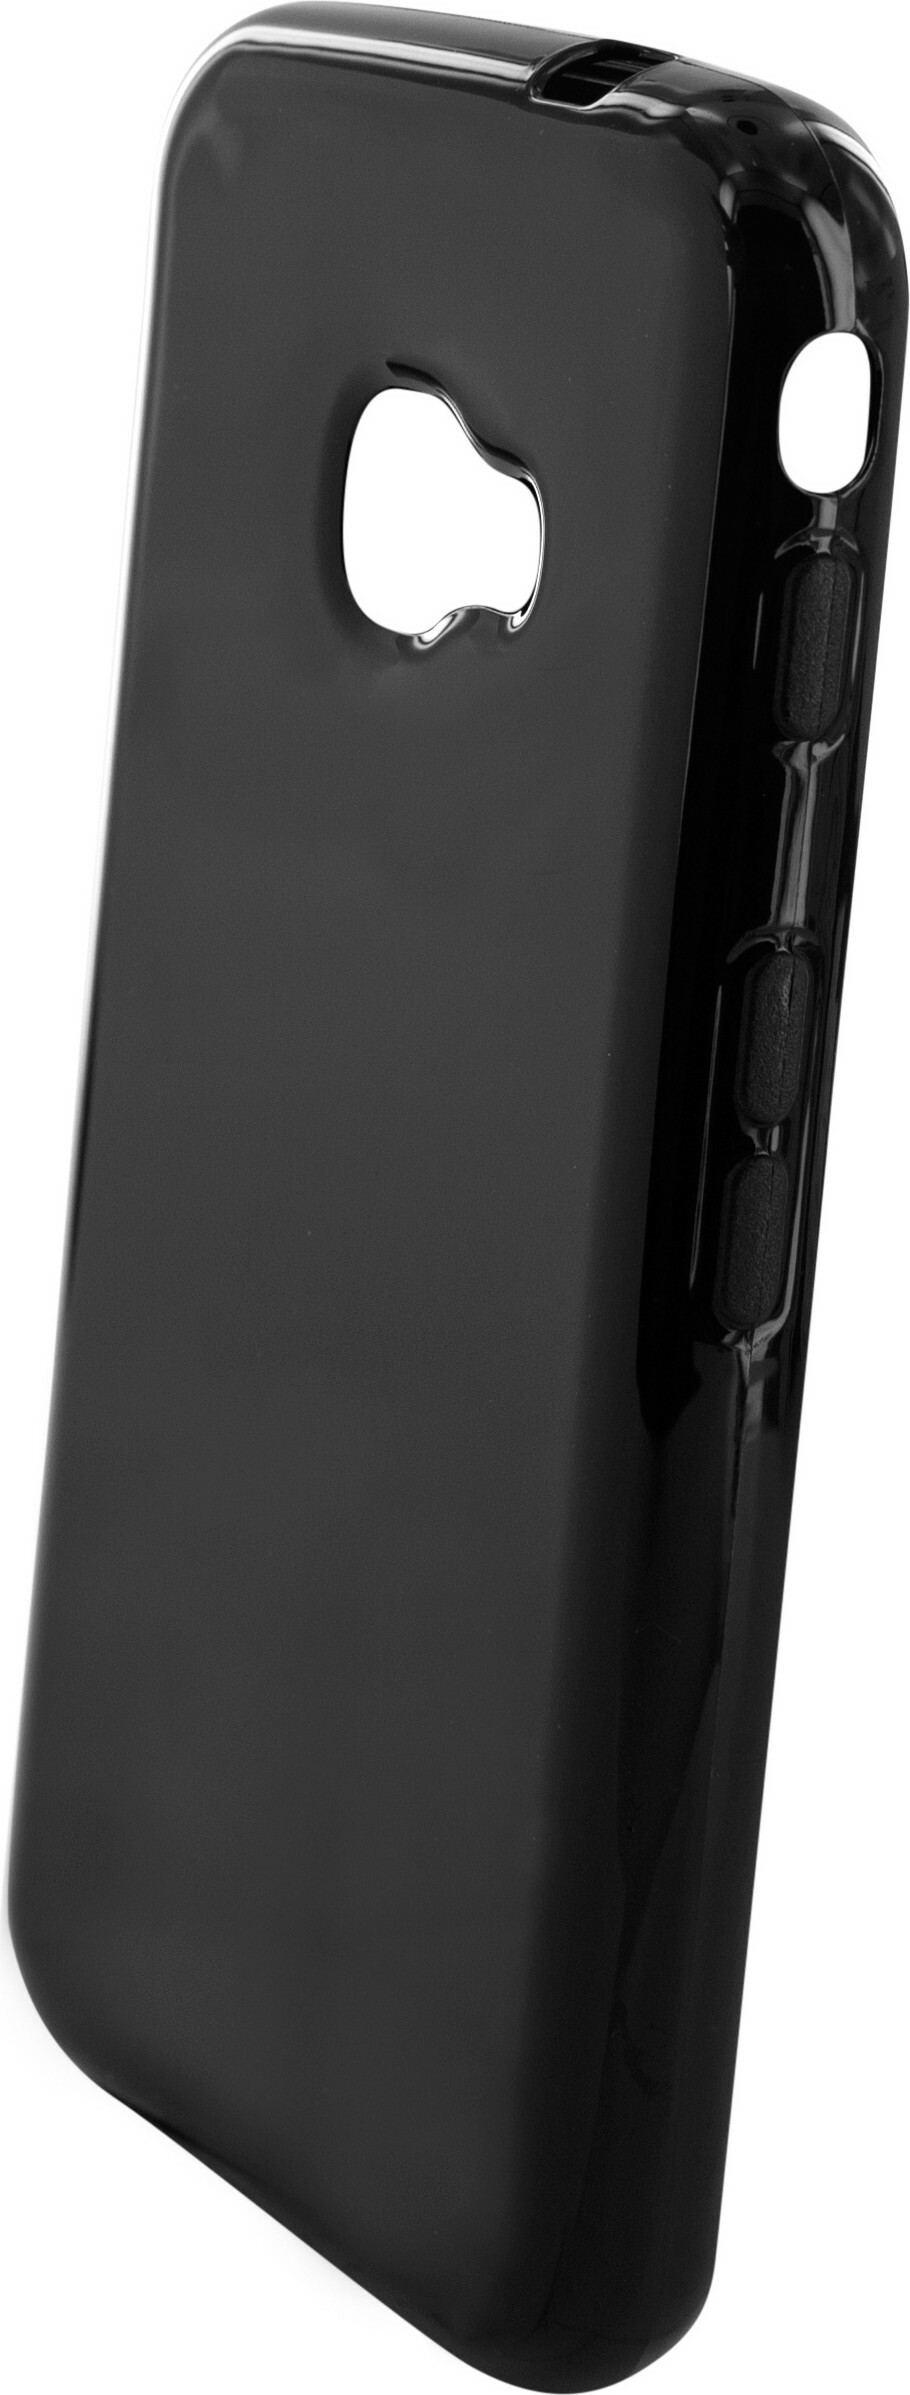 Mobiparts Essential TPU Case Samsung Galaxy Xcover 4 Black